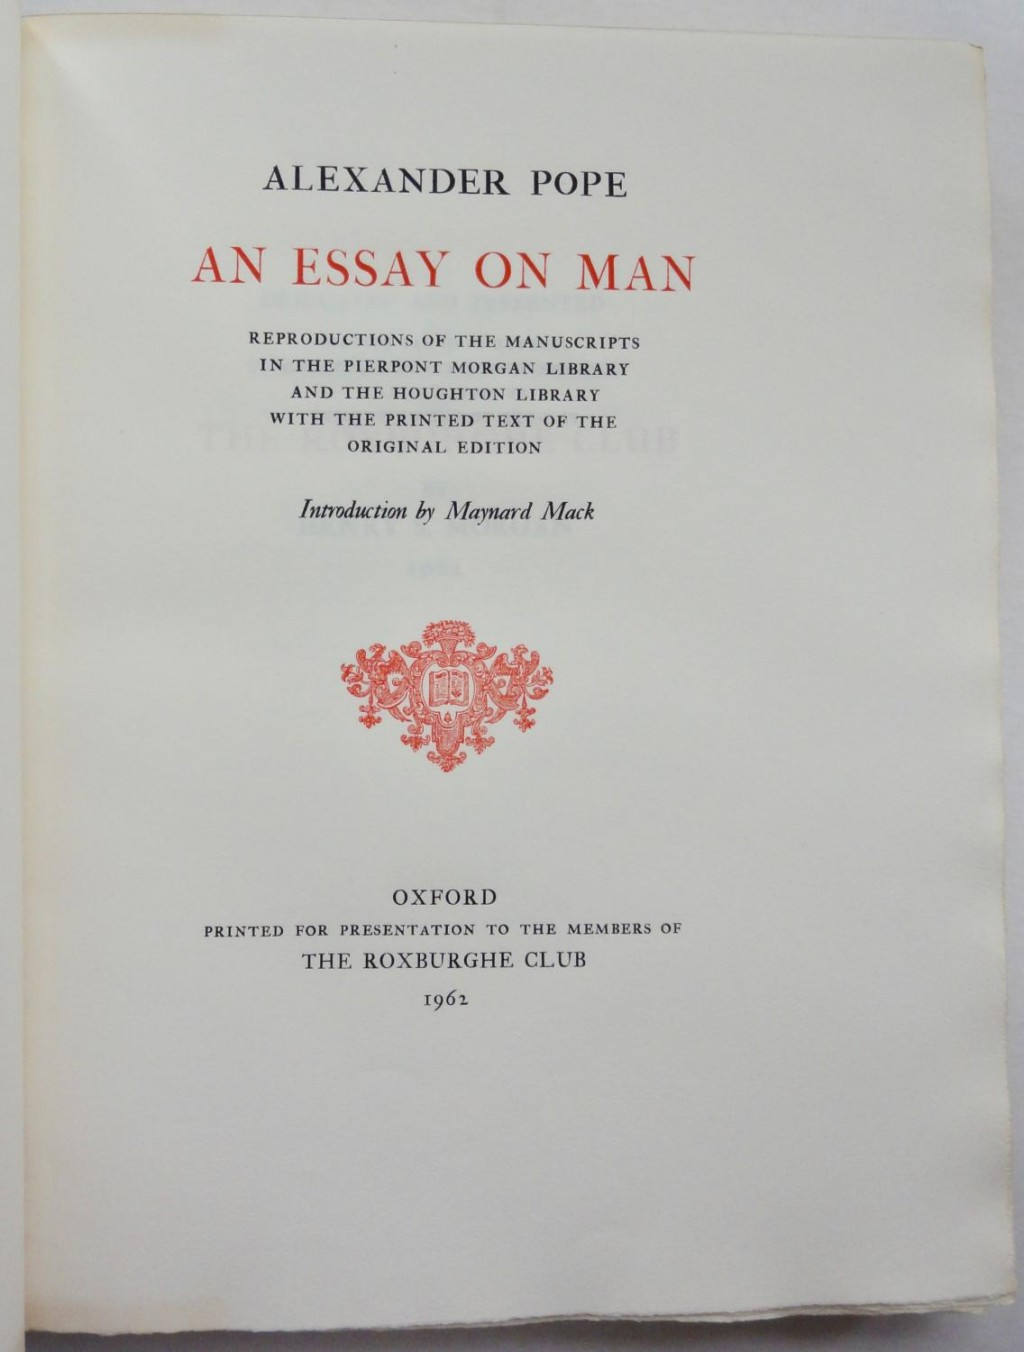 011 An Essay On Man Fantastic Epistle 2 Meaning Summary Sparknotes Part 1 Large